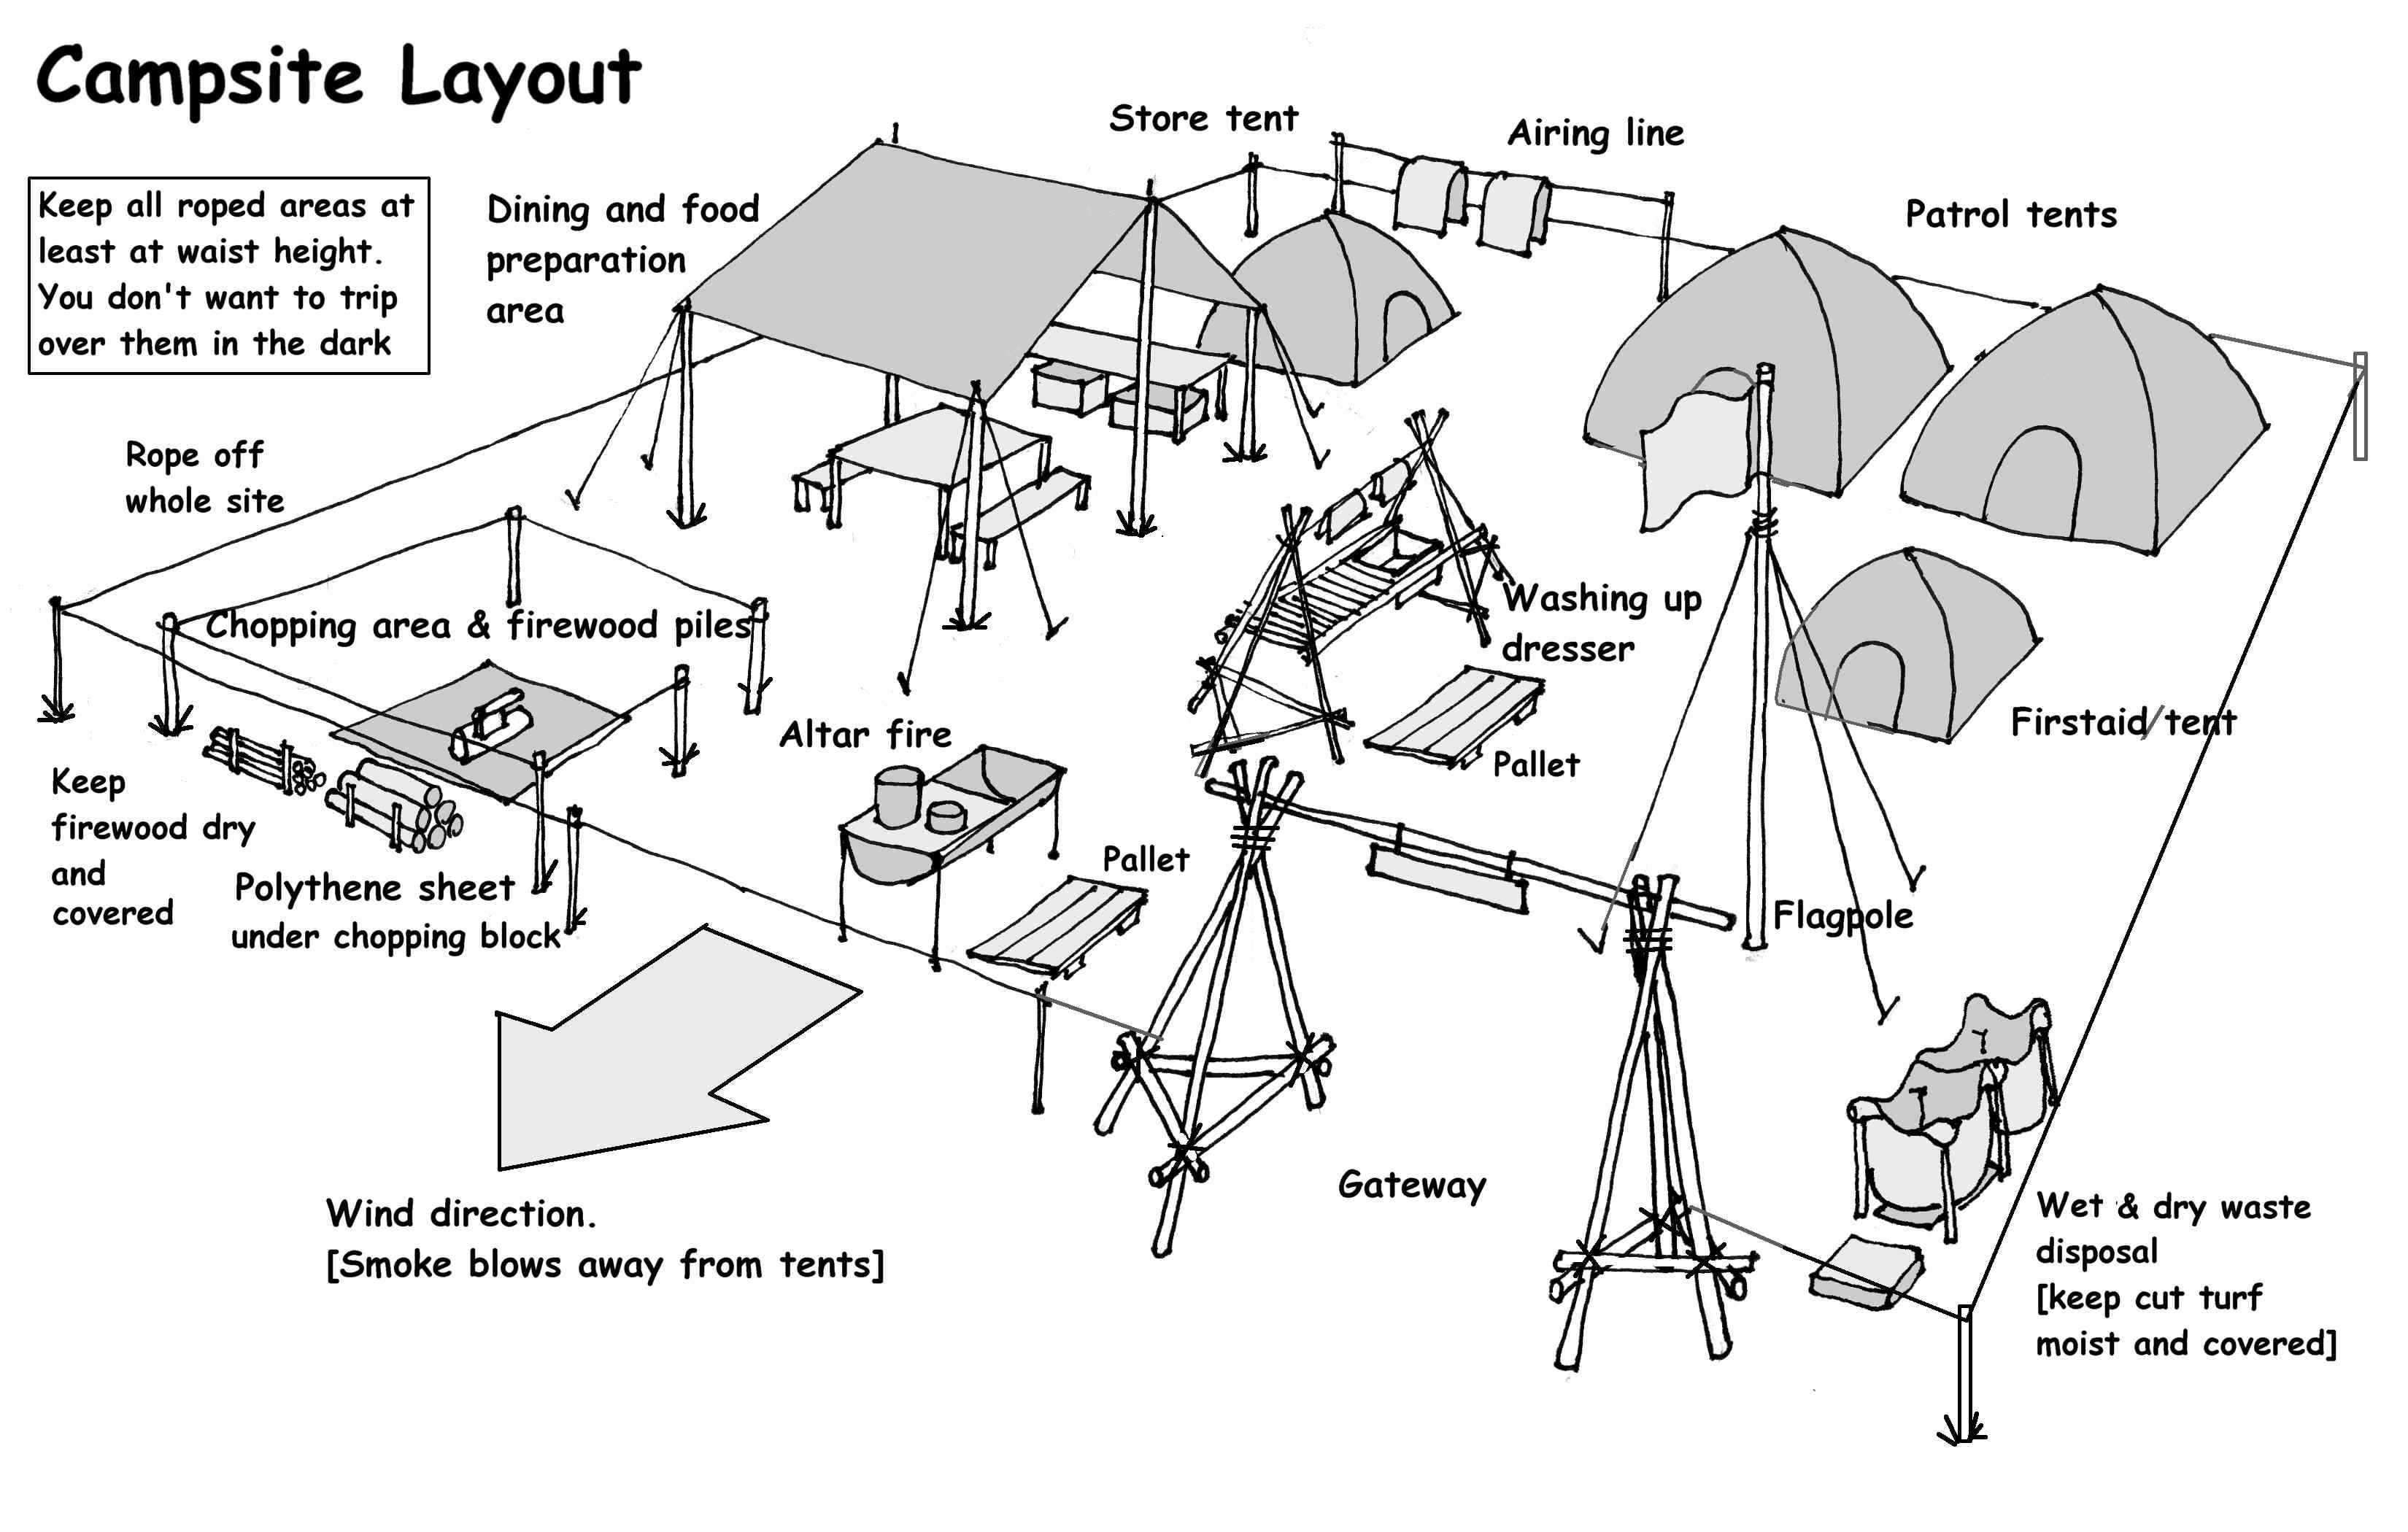 Scouts Camping Skills Design Cub Scout Boy Scouts Pinterest Camping Google And Survival